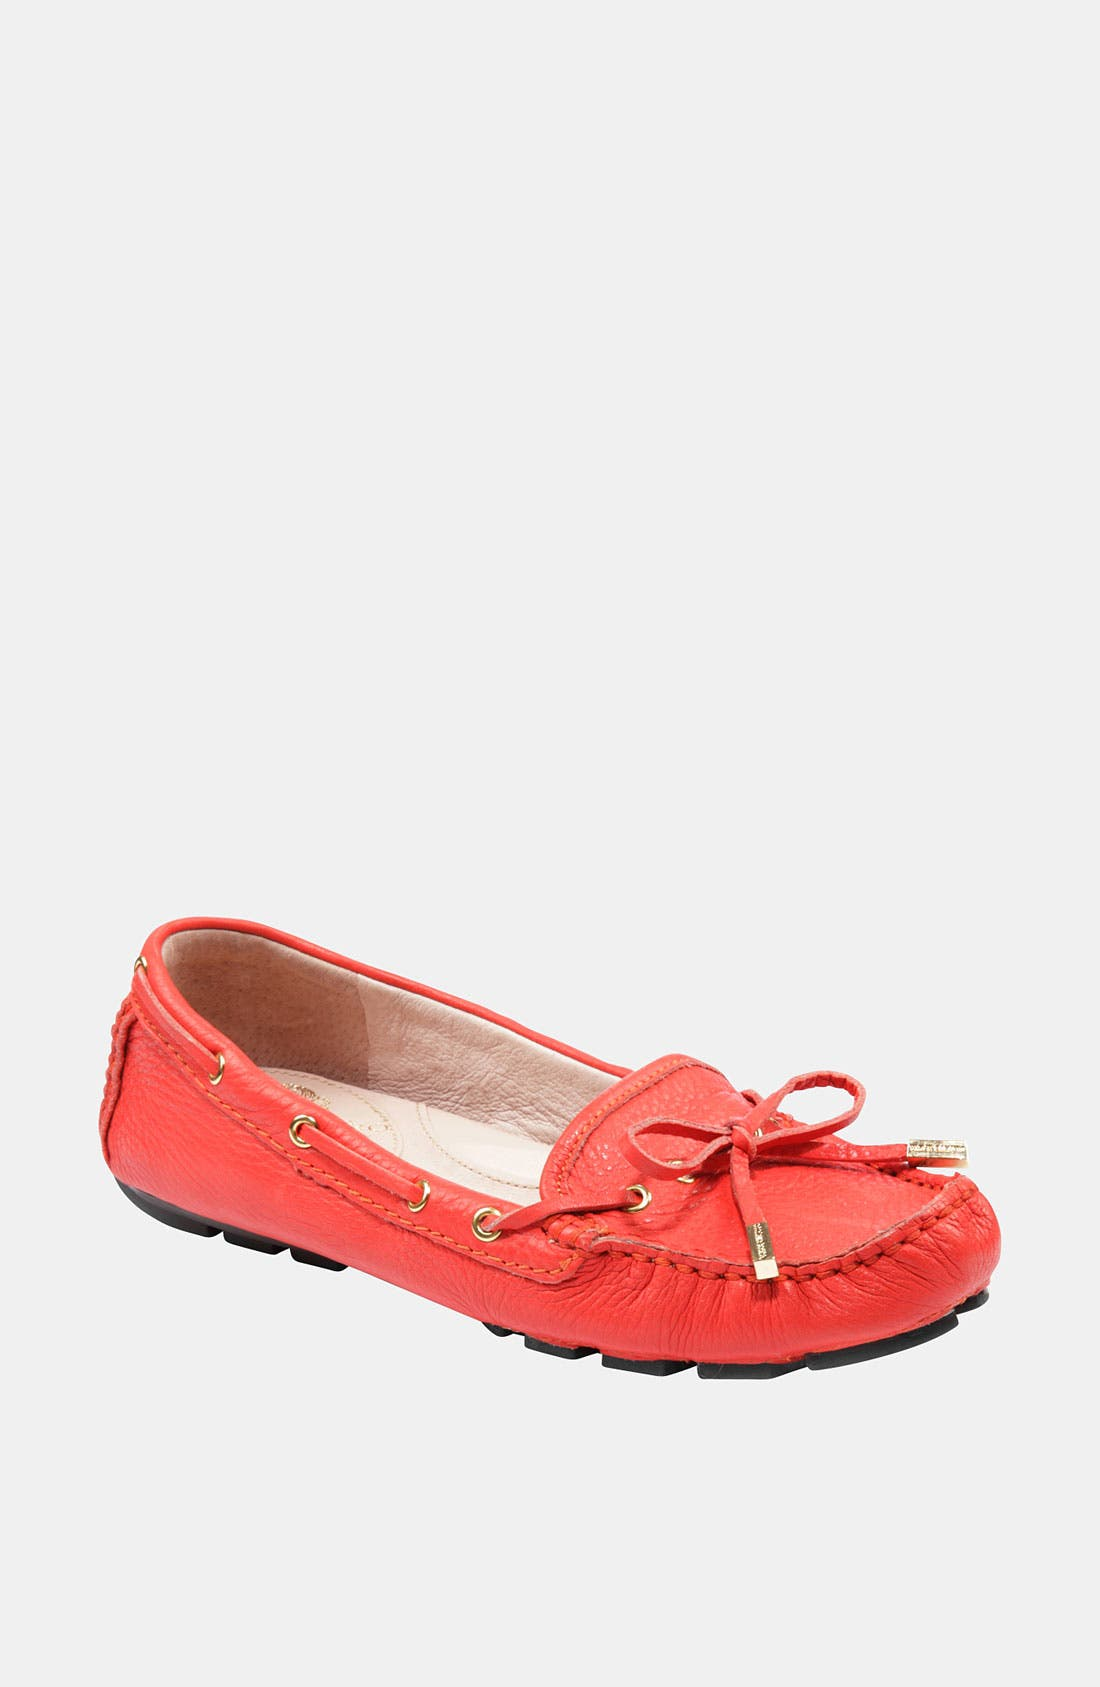 Alternate Image 1 Selected - Vince Camuto 'Paula' Flat